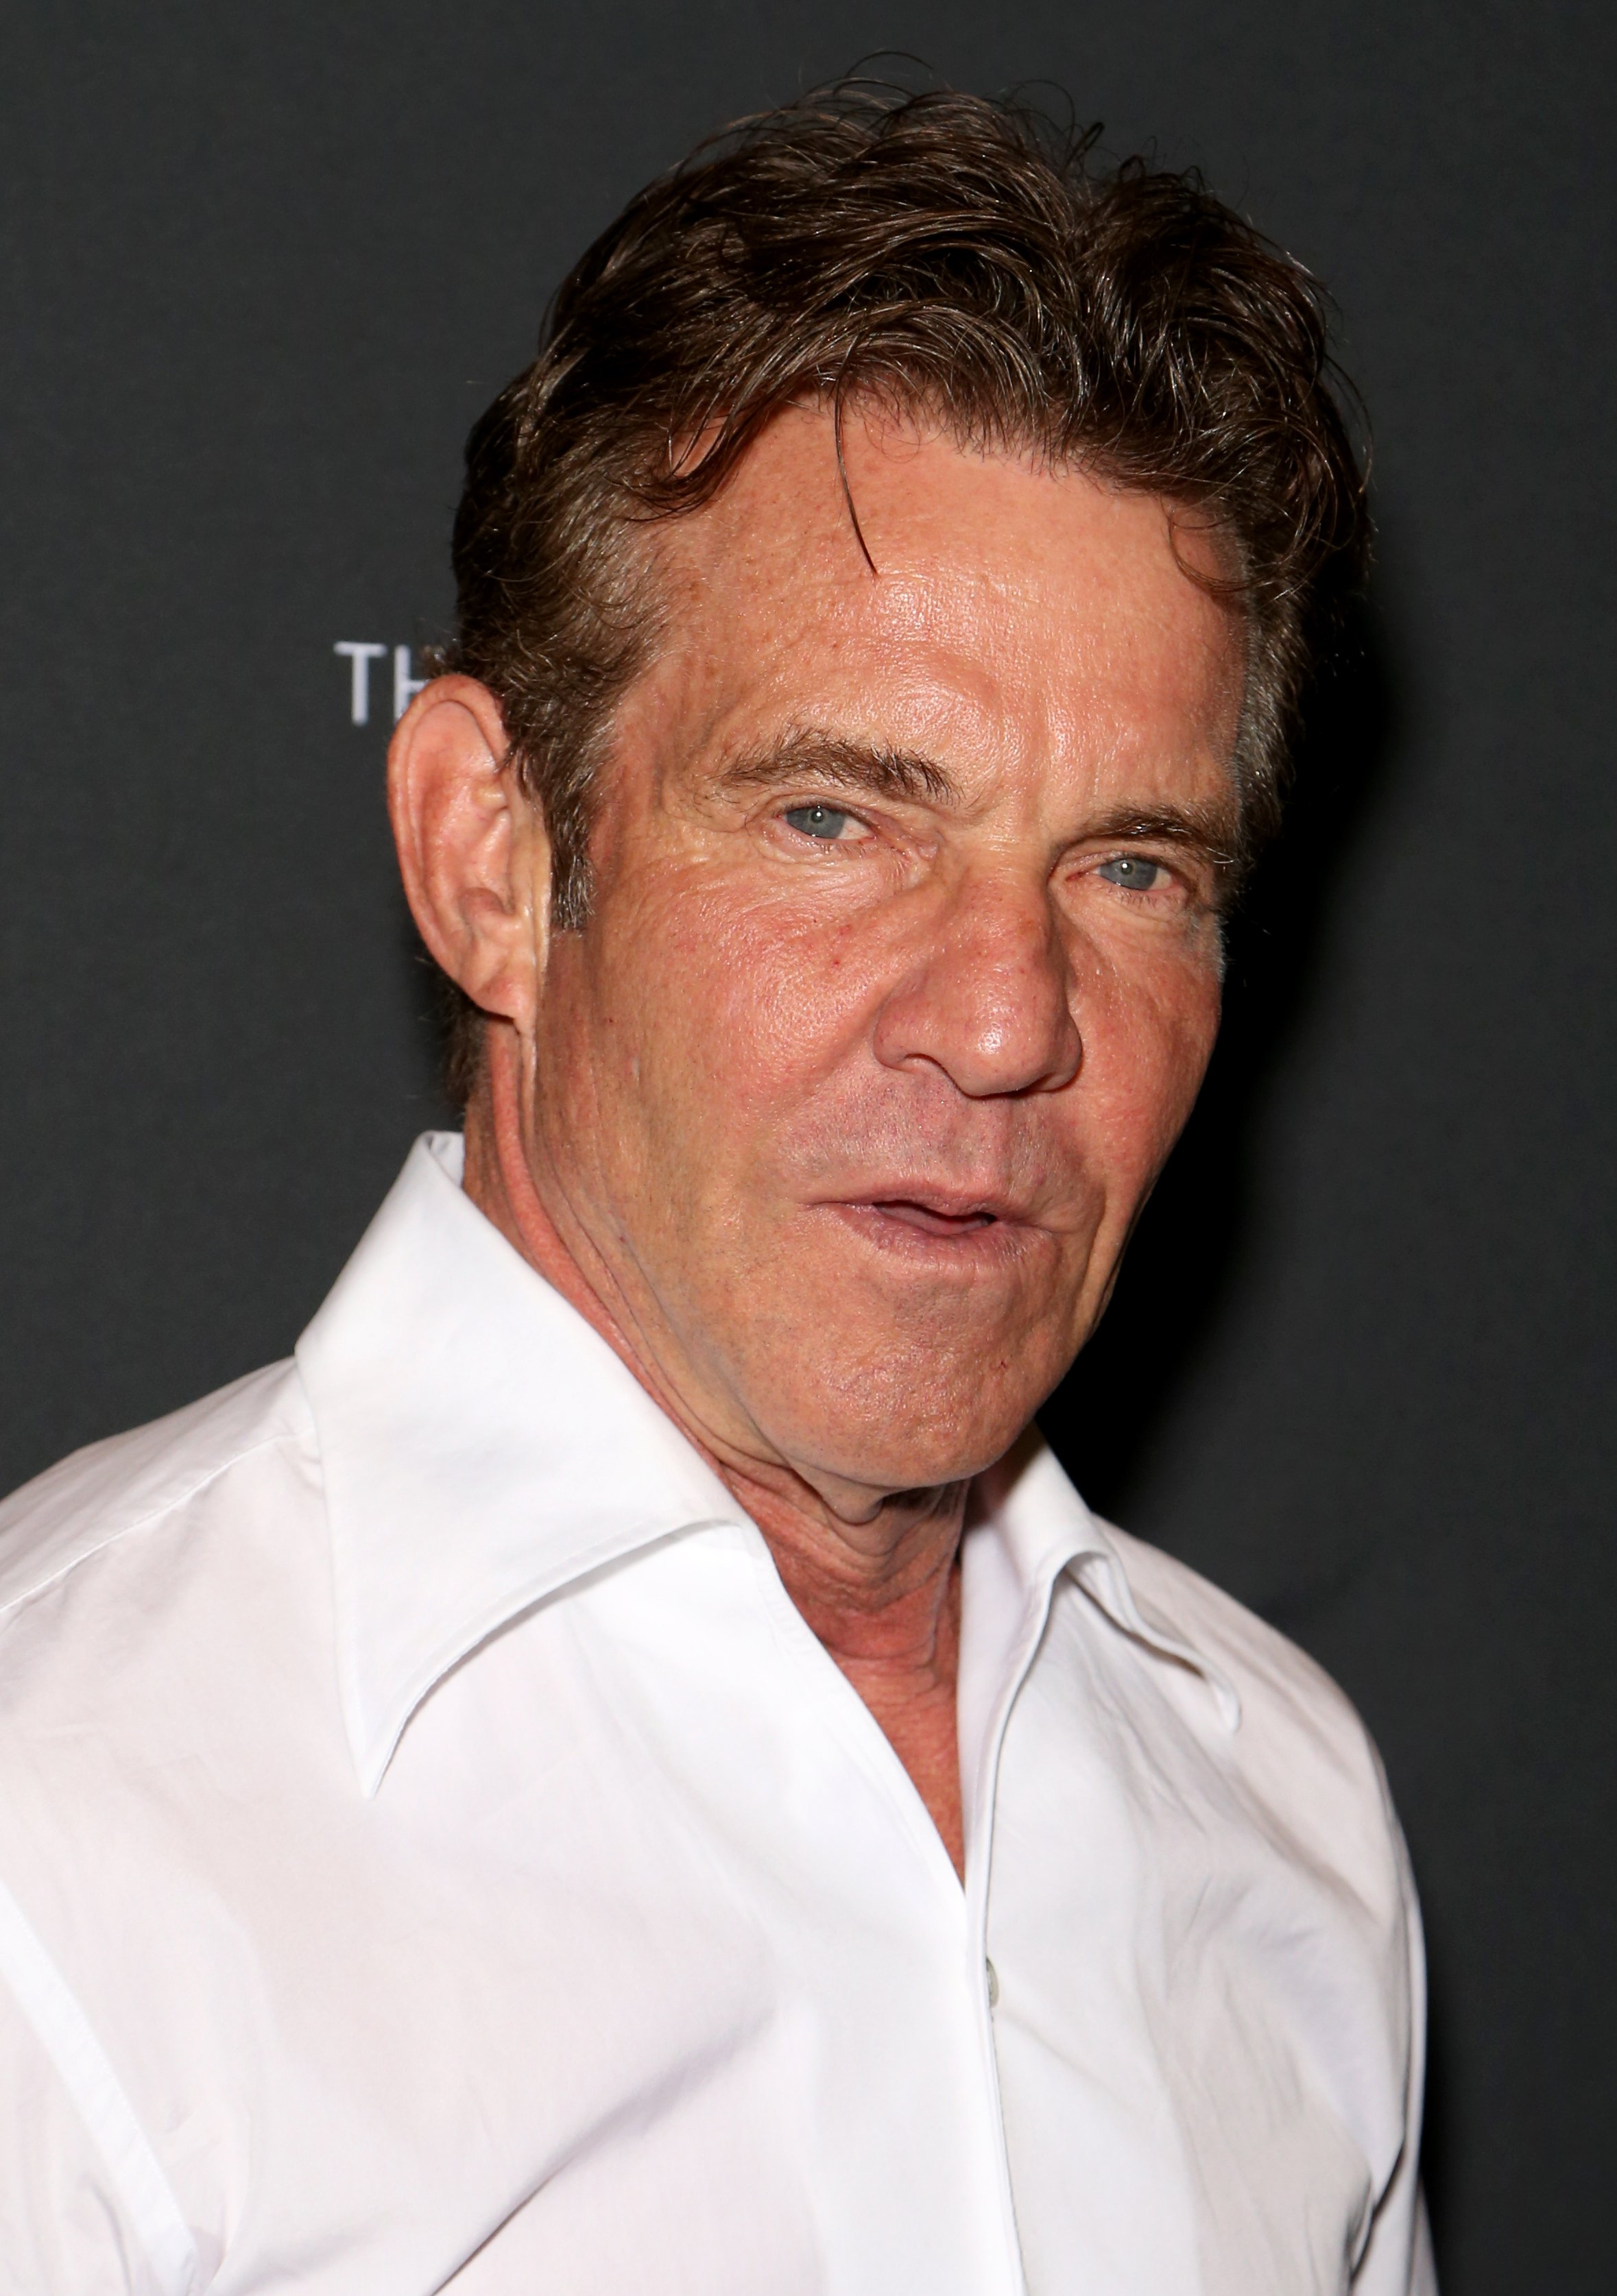 Dennis Quaid attends Dennis Quaid and the Sharks in Las Vegas, Nevada on May 11, 2019 | Photo: Getty Images